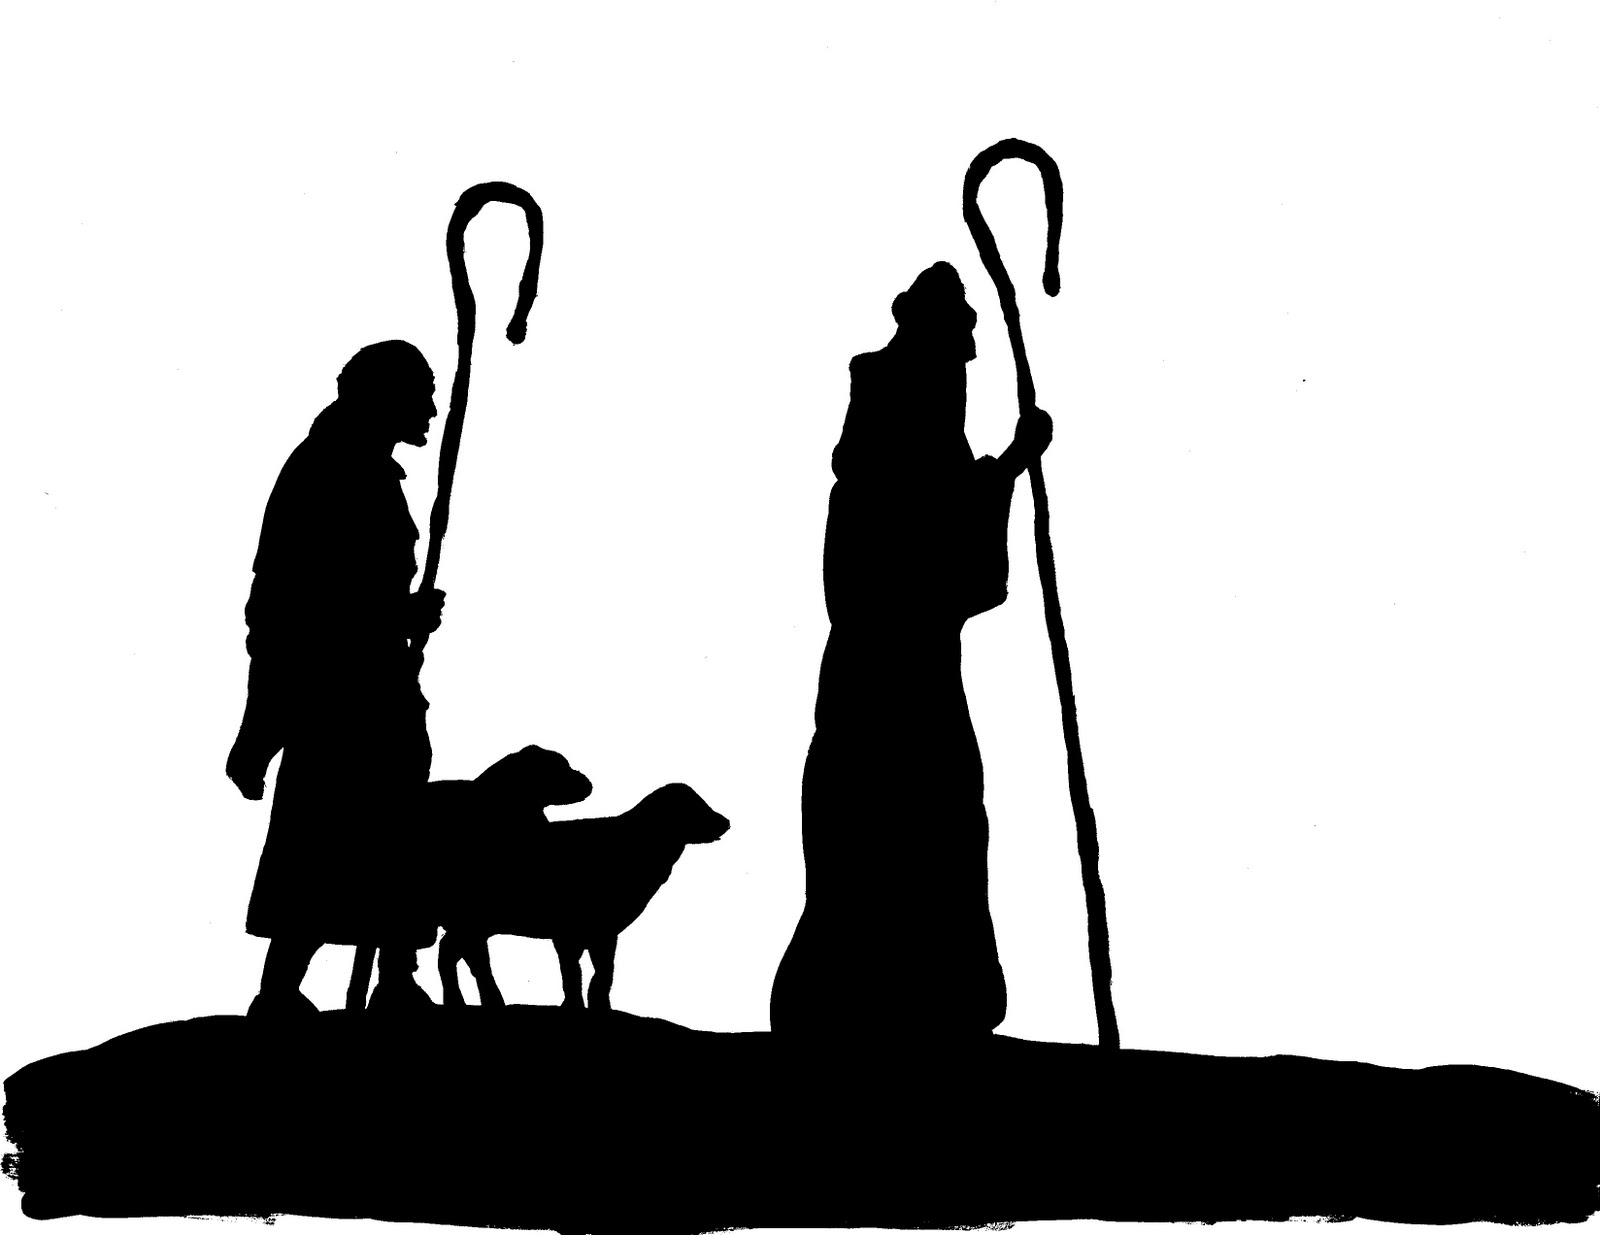 1600x1235 Nativity silhouettes including camel, angel, three magi bringing